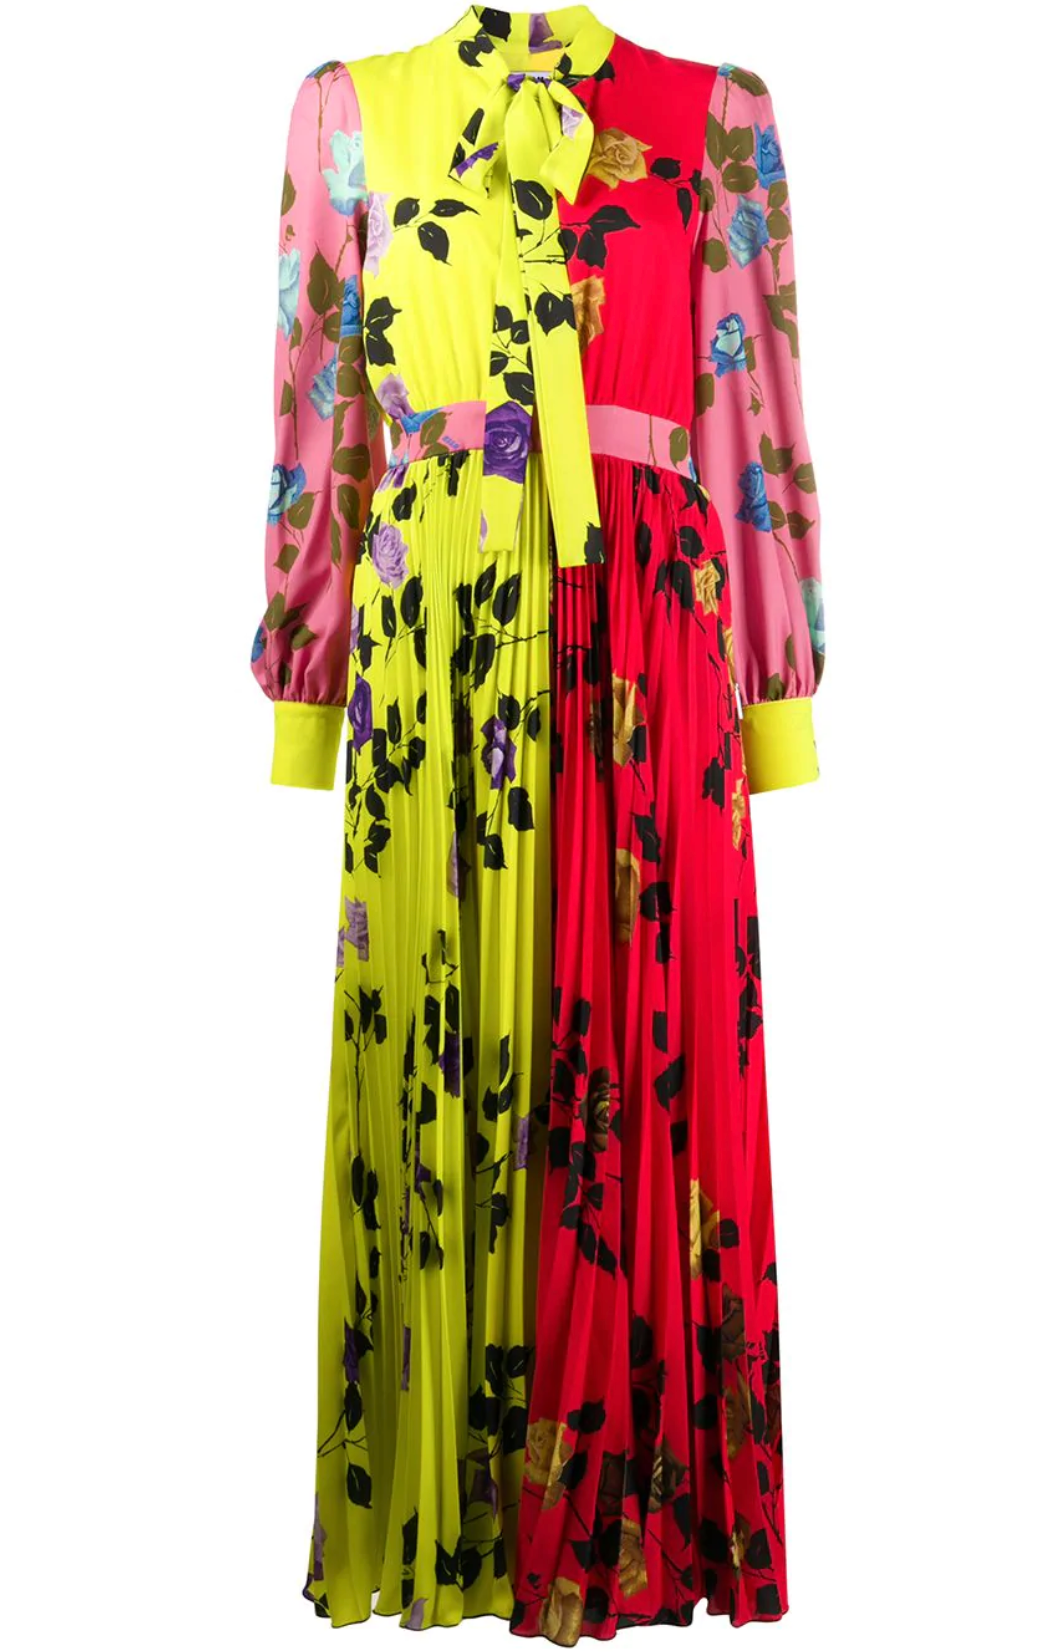 Pleated Print Dress - Neon Floral